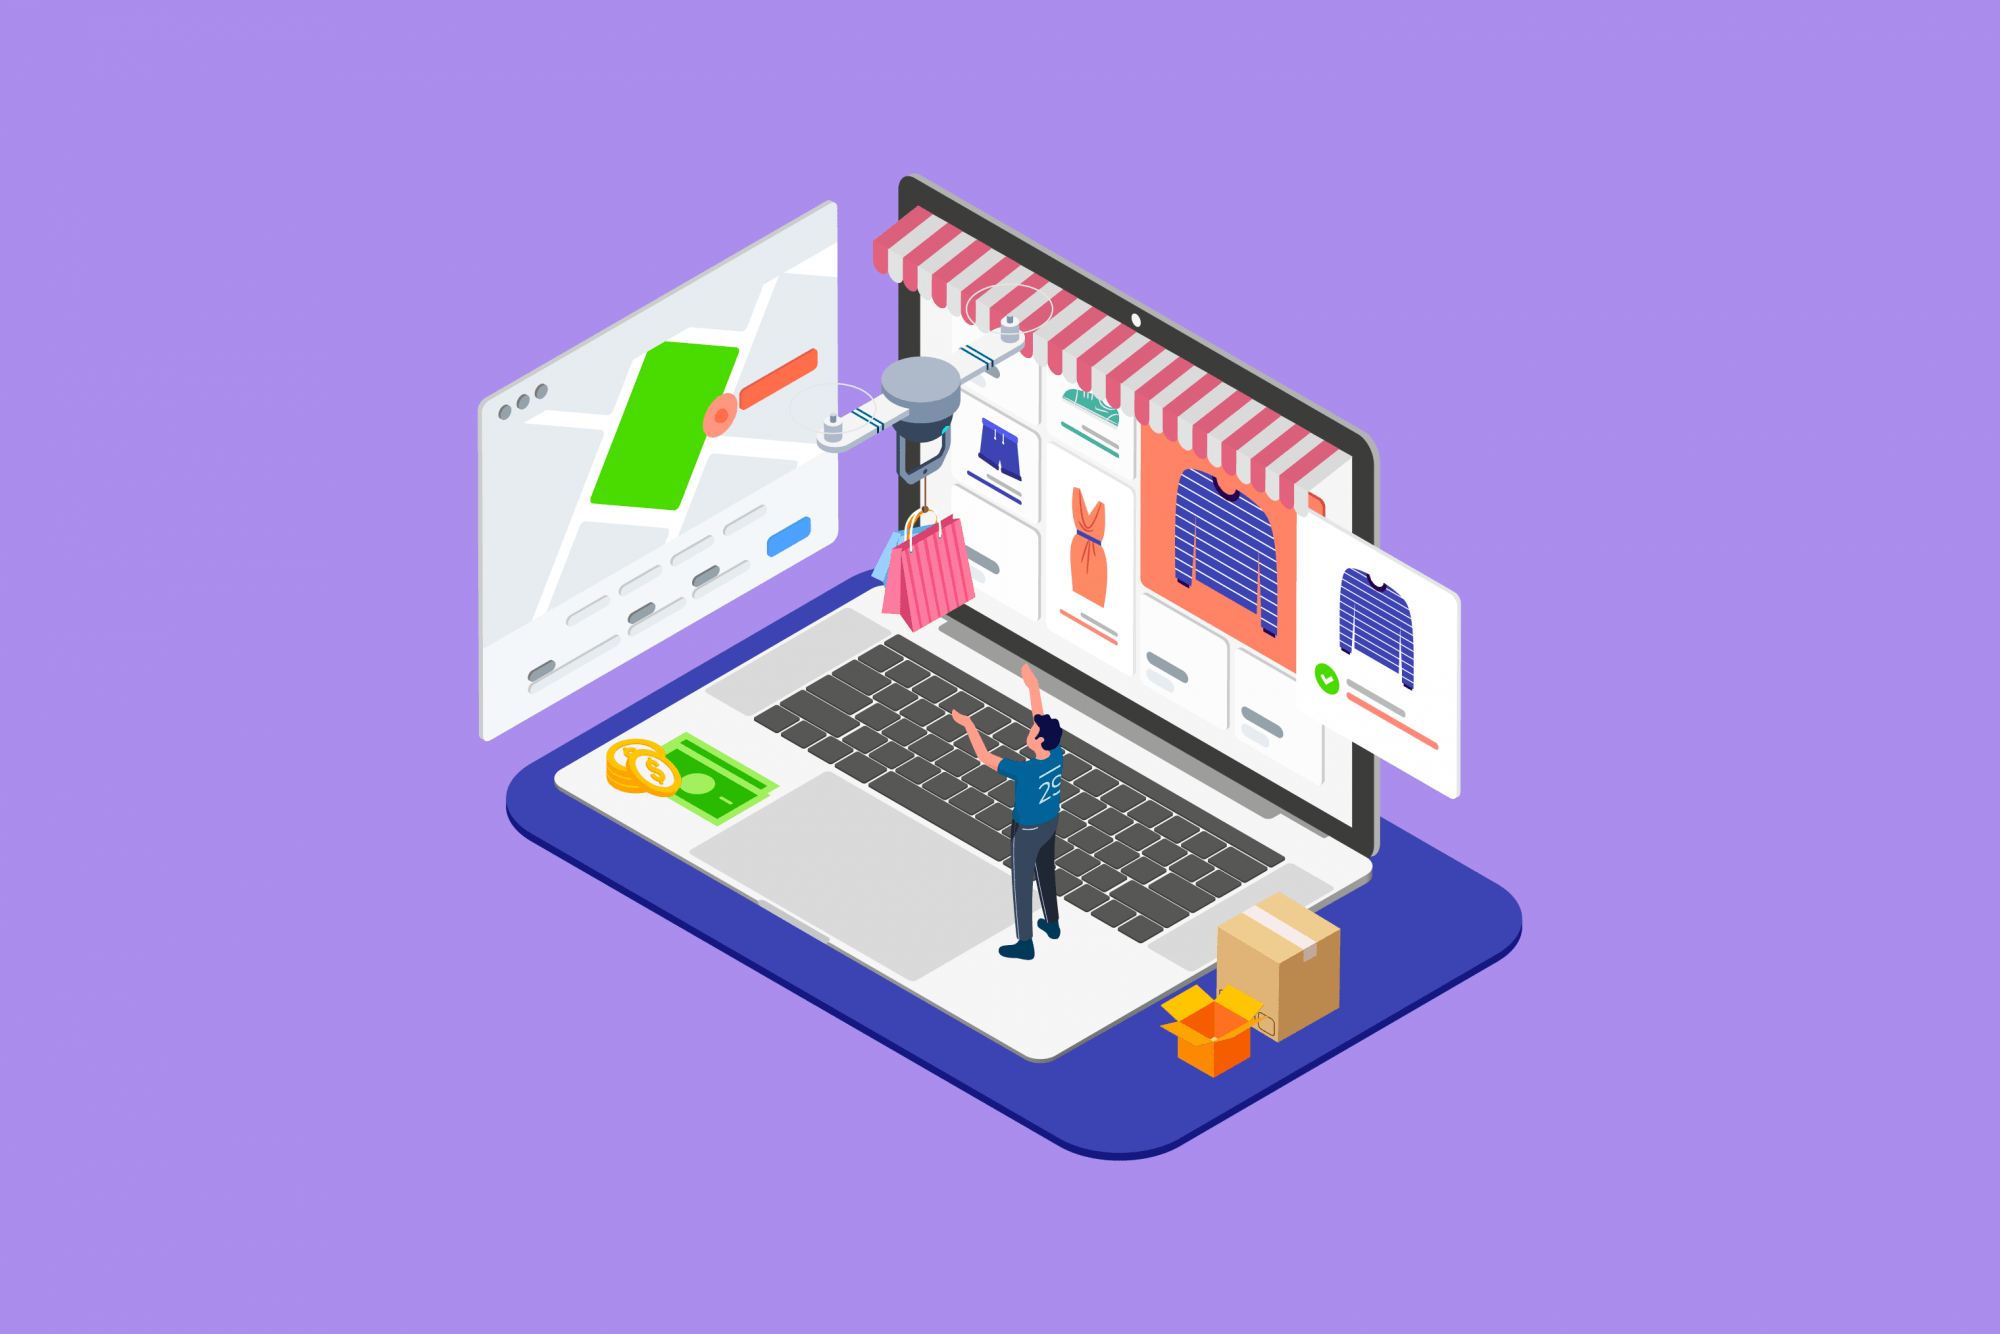 Drones-Delivery-Isometric-Illustration-T25.png